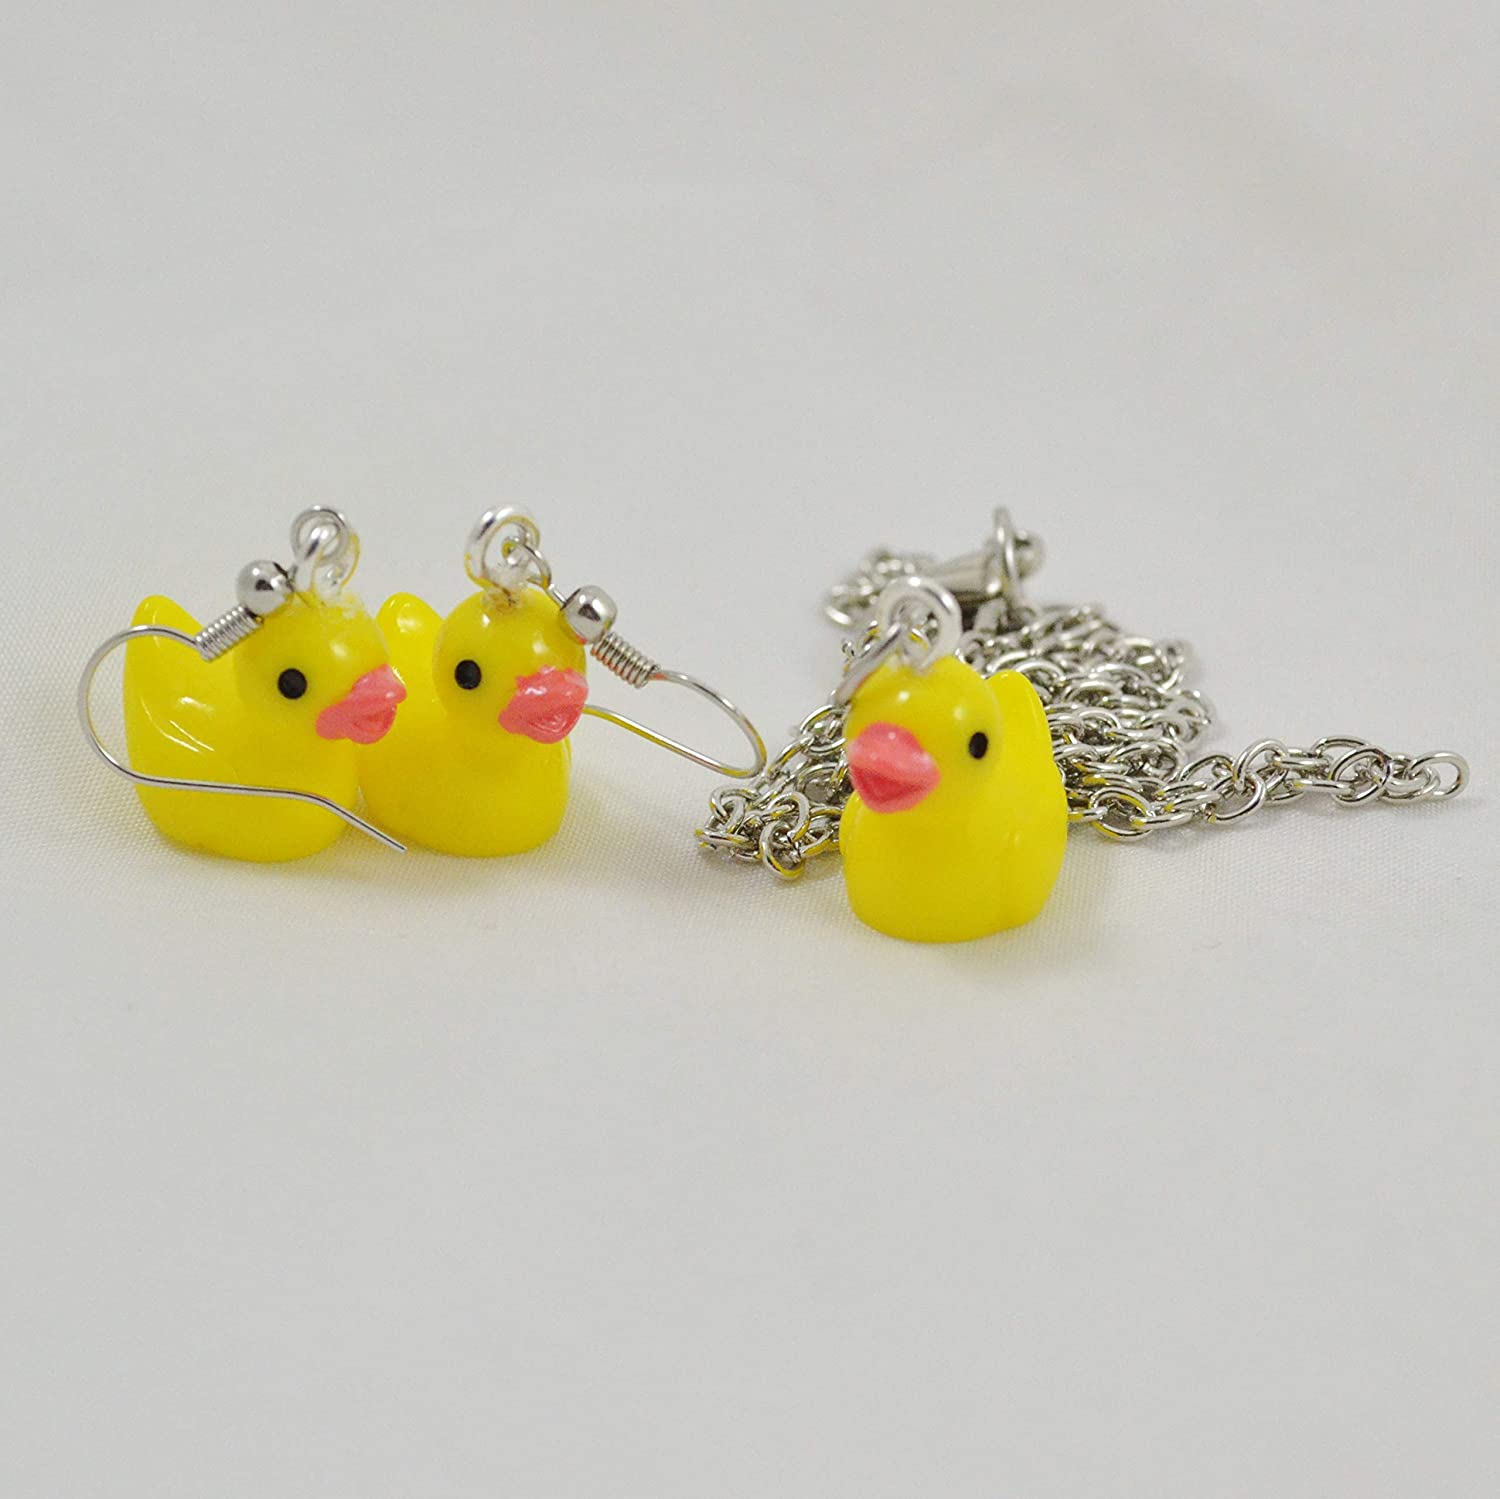 Cute Yellow Rubber Duck Duckie Earrings and Necklace